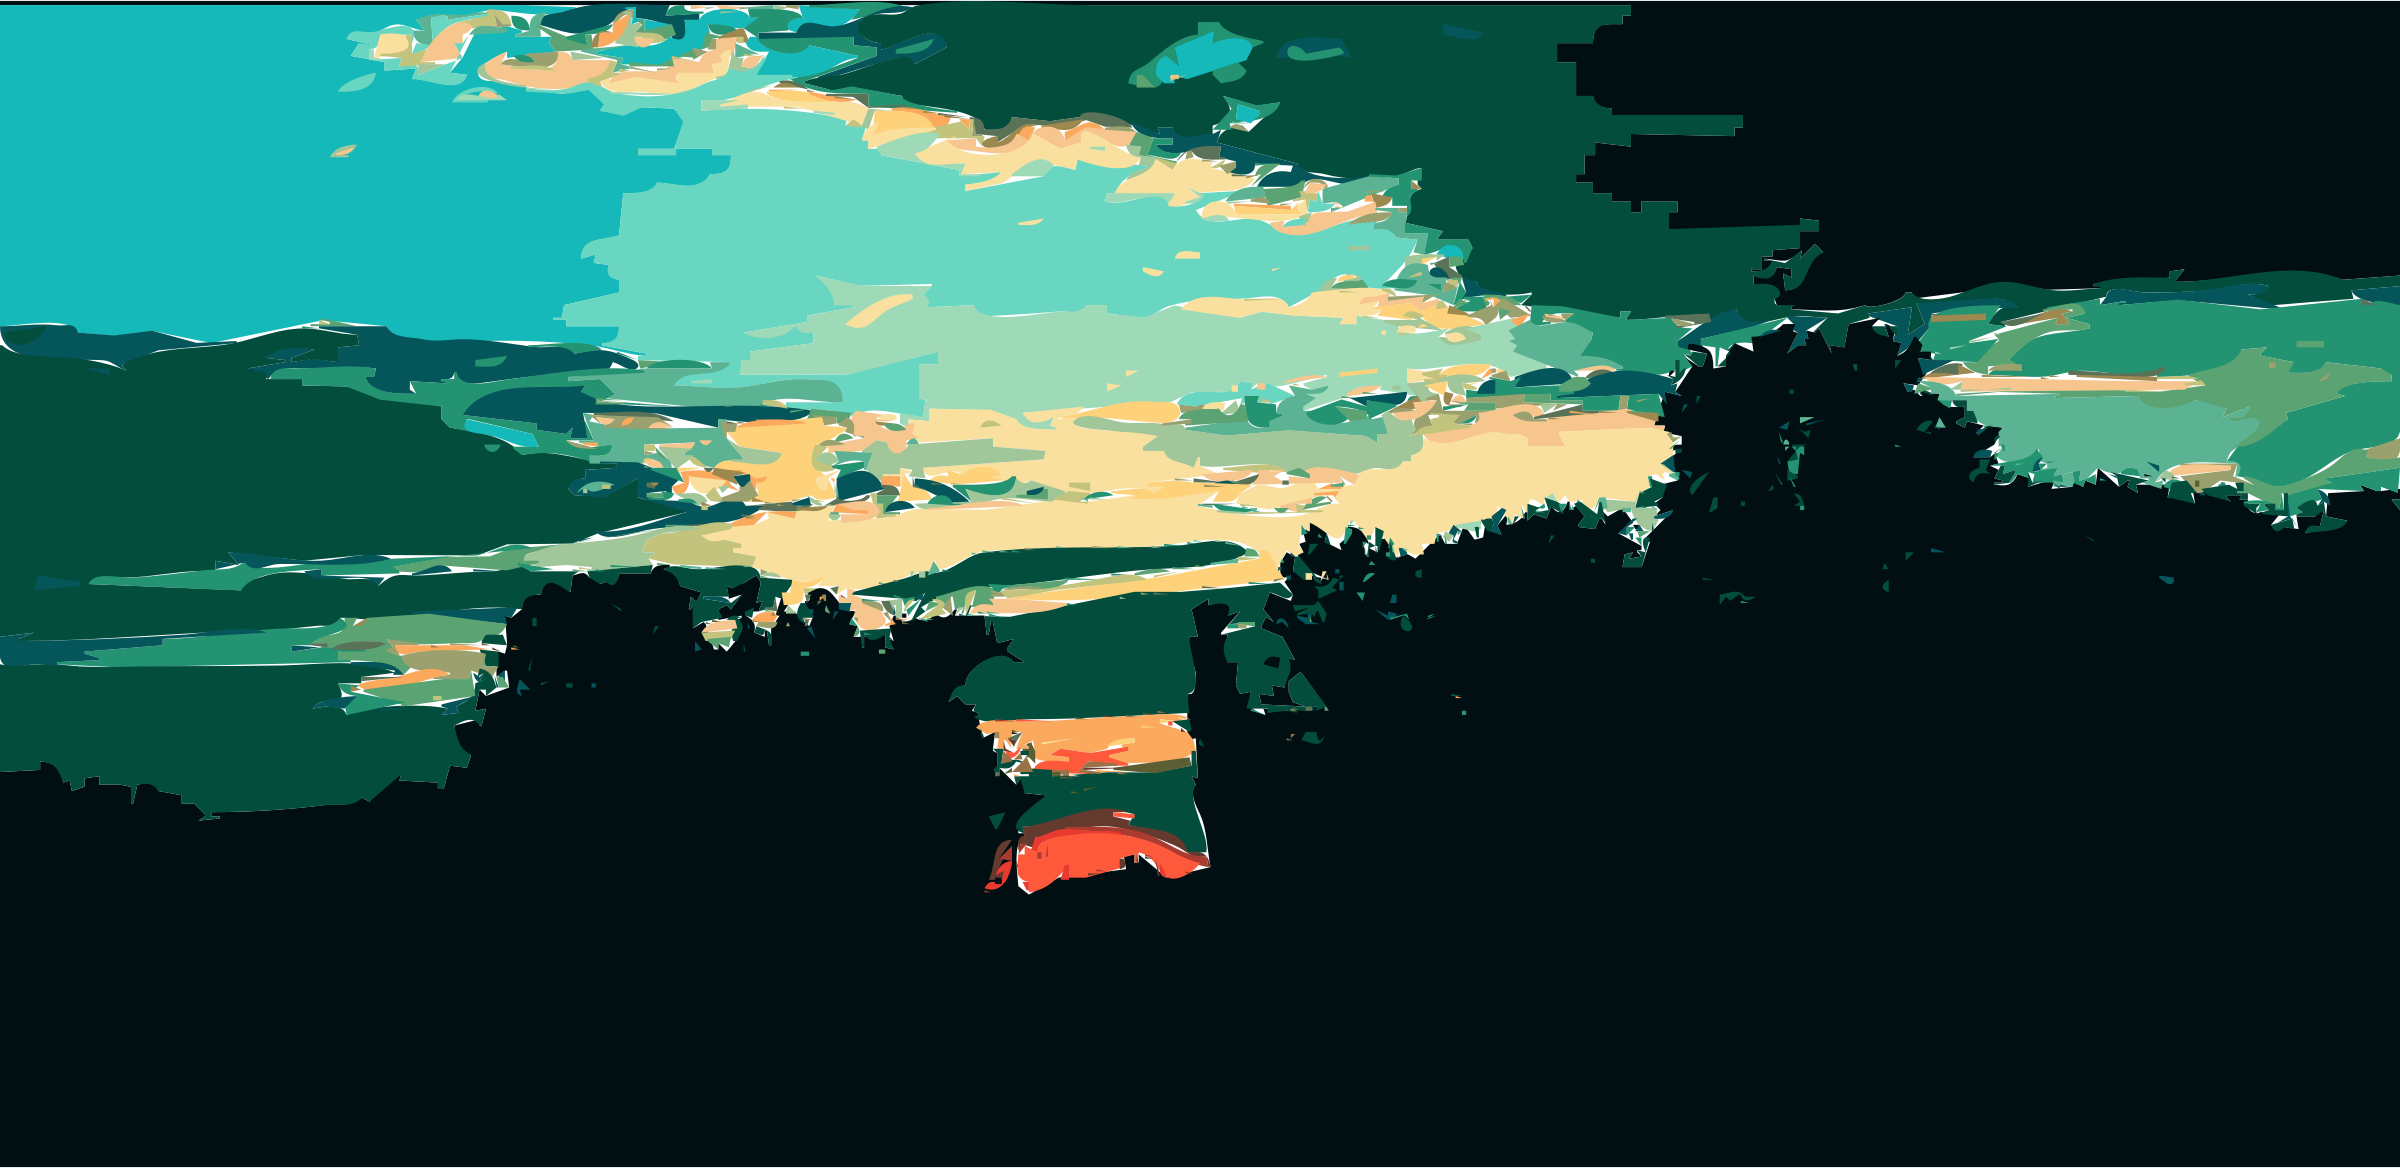 Daily Sketch 16: Sunset by keriann3